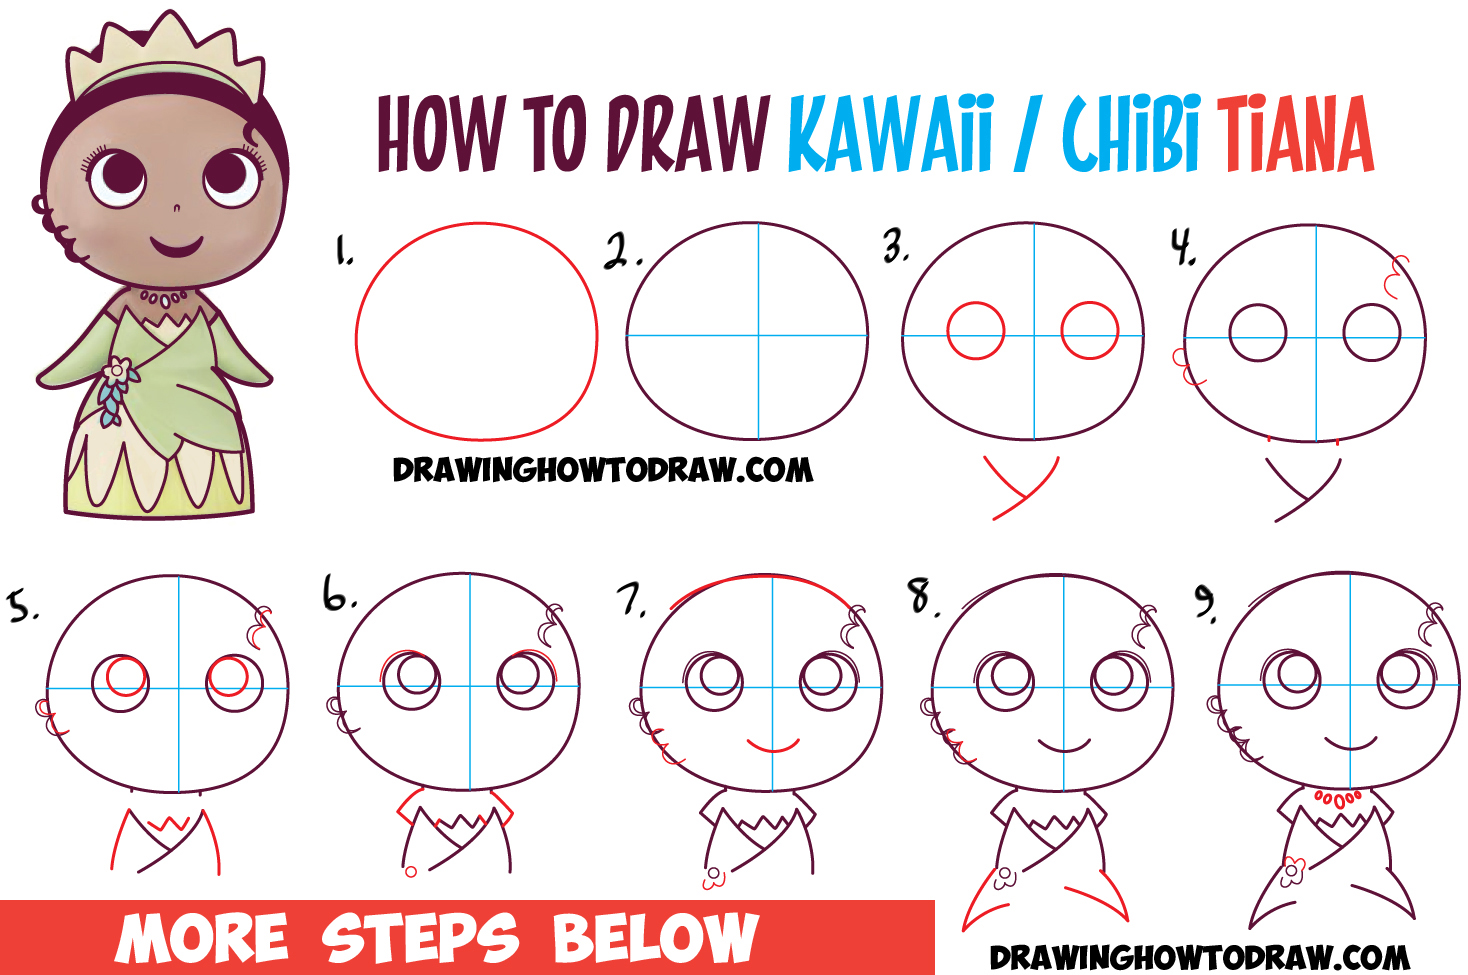 How to Draw Cute Baby Chibi Kawaii Tiana the Disney Princess Easy Step by Step Drawing Tutorial